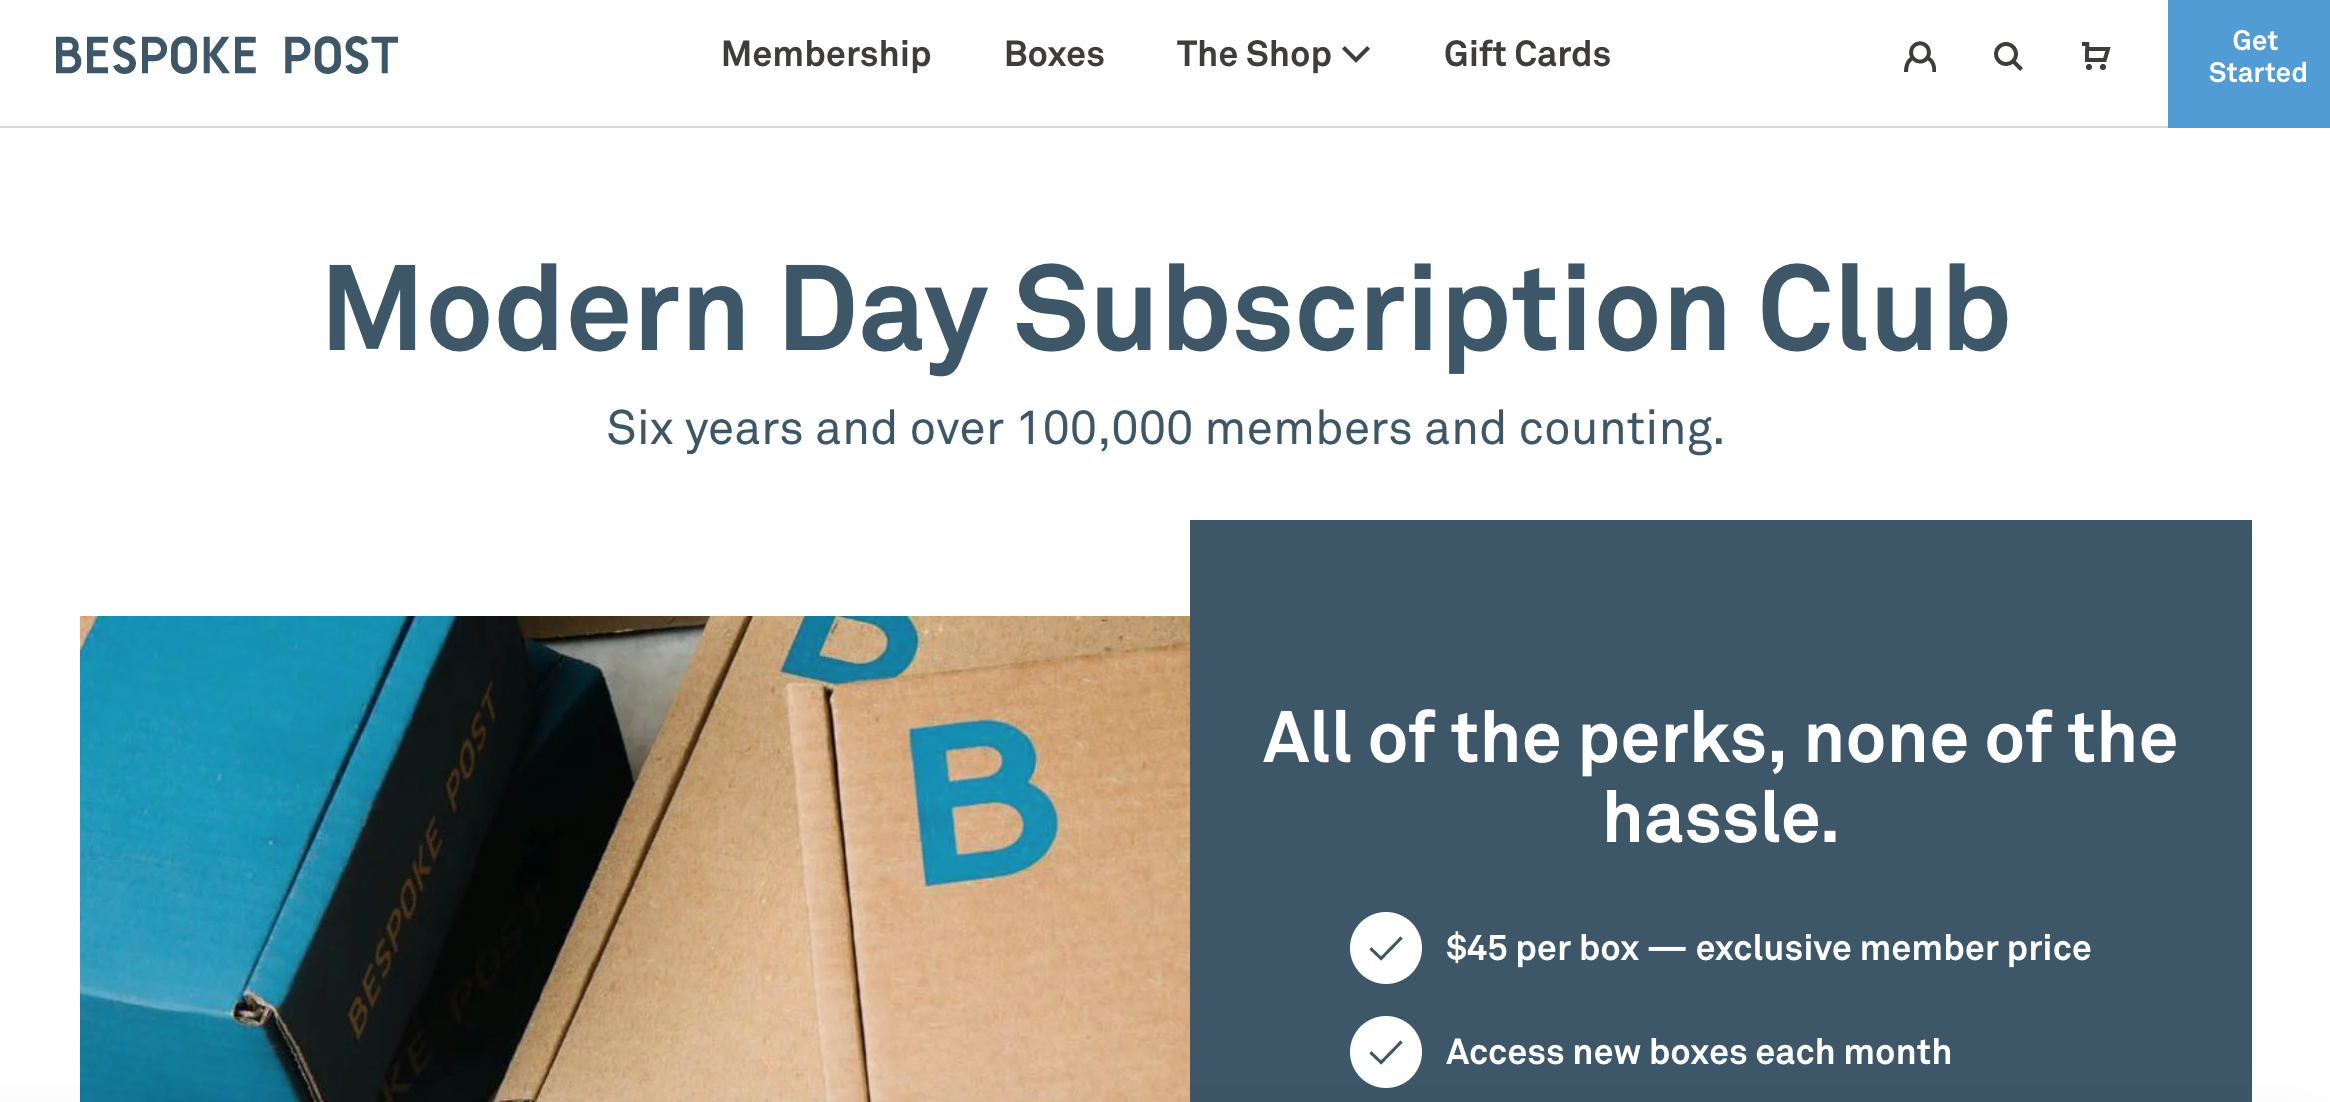 6 subscription box product driven customer centricity